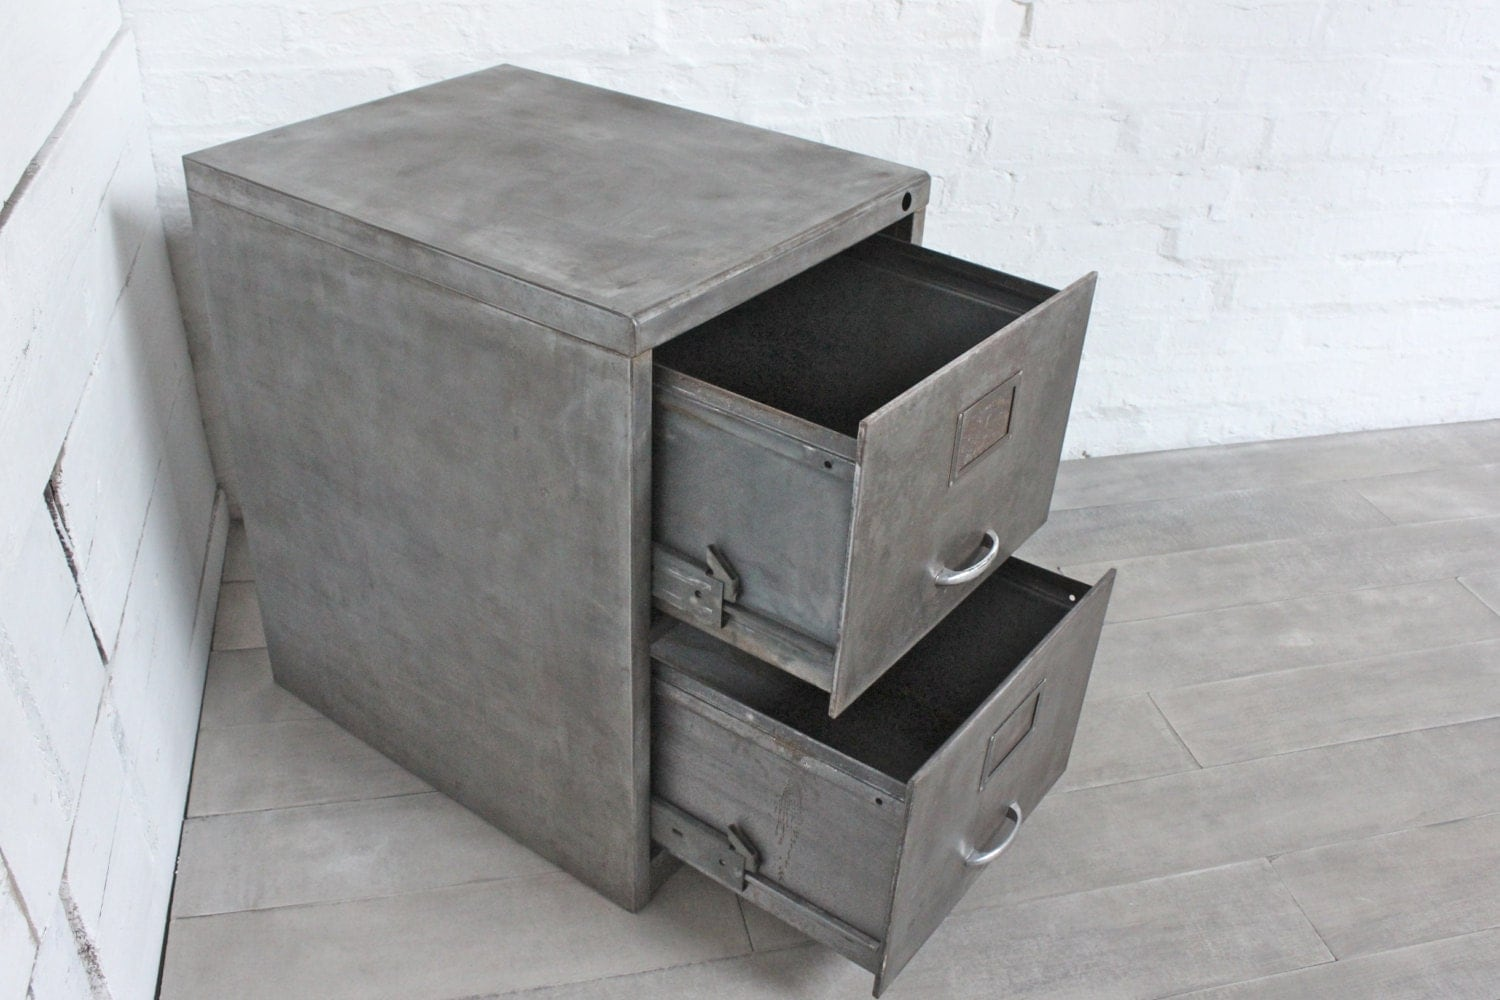 Reclaimed Vintage Urban Industrial Urban 1960s Stripped Patinated Bare  Steel 2 Drawer Filing Cabinet U2013 Reclaimed Industrial Office Furniture